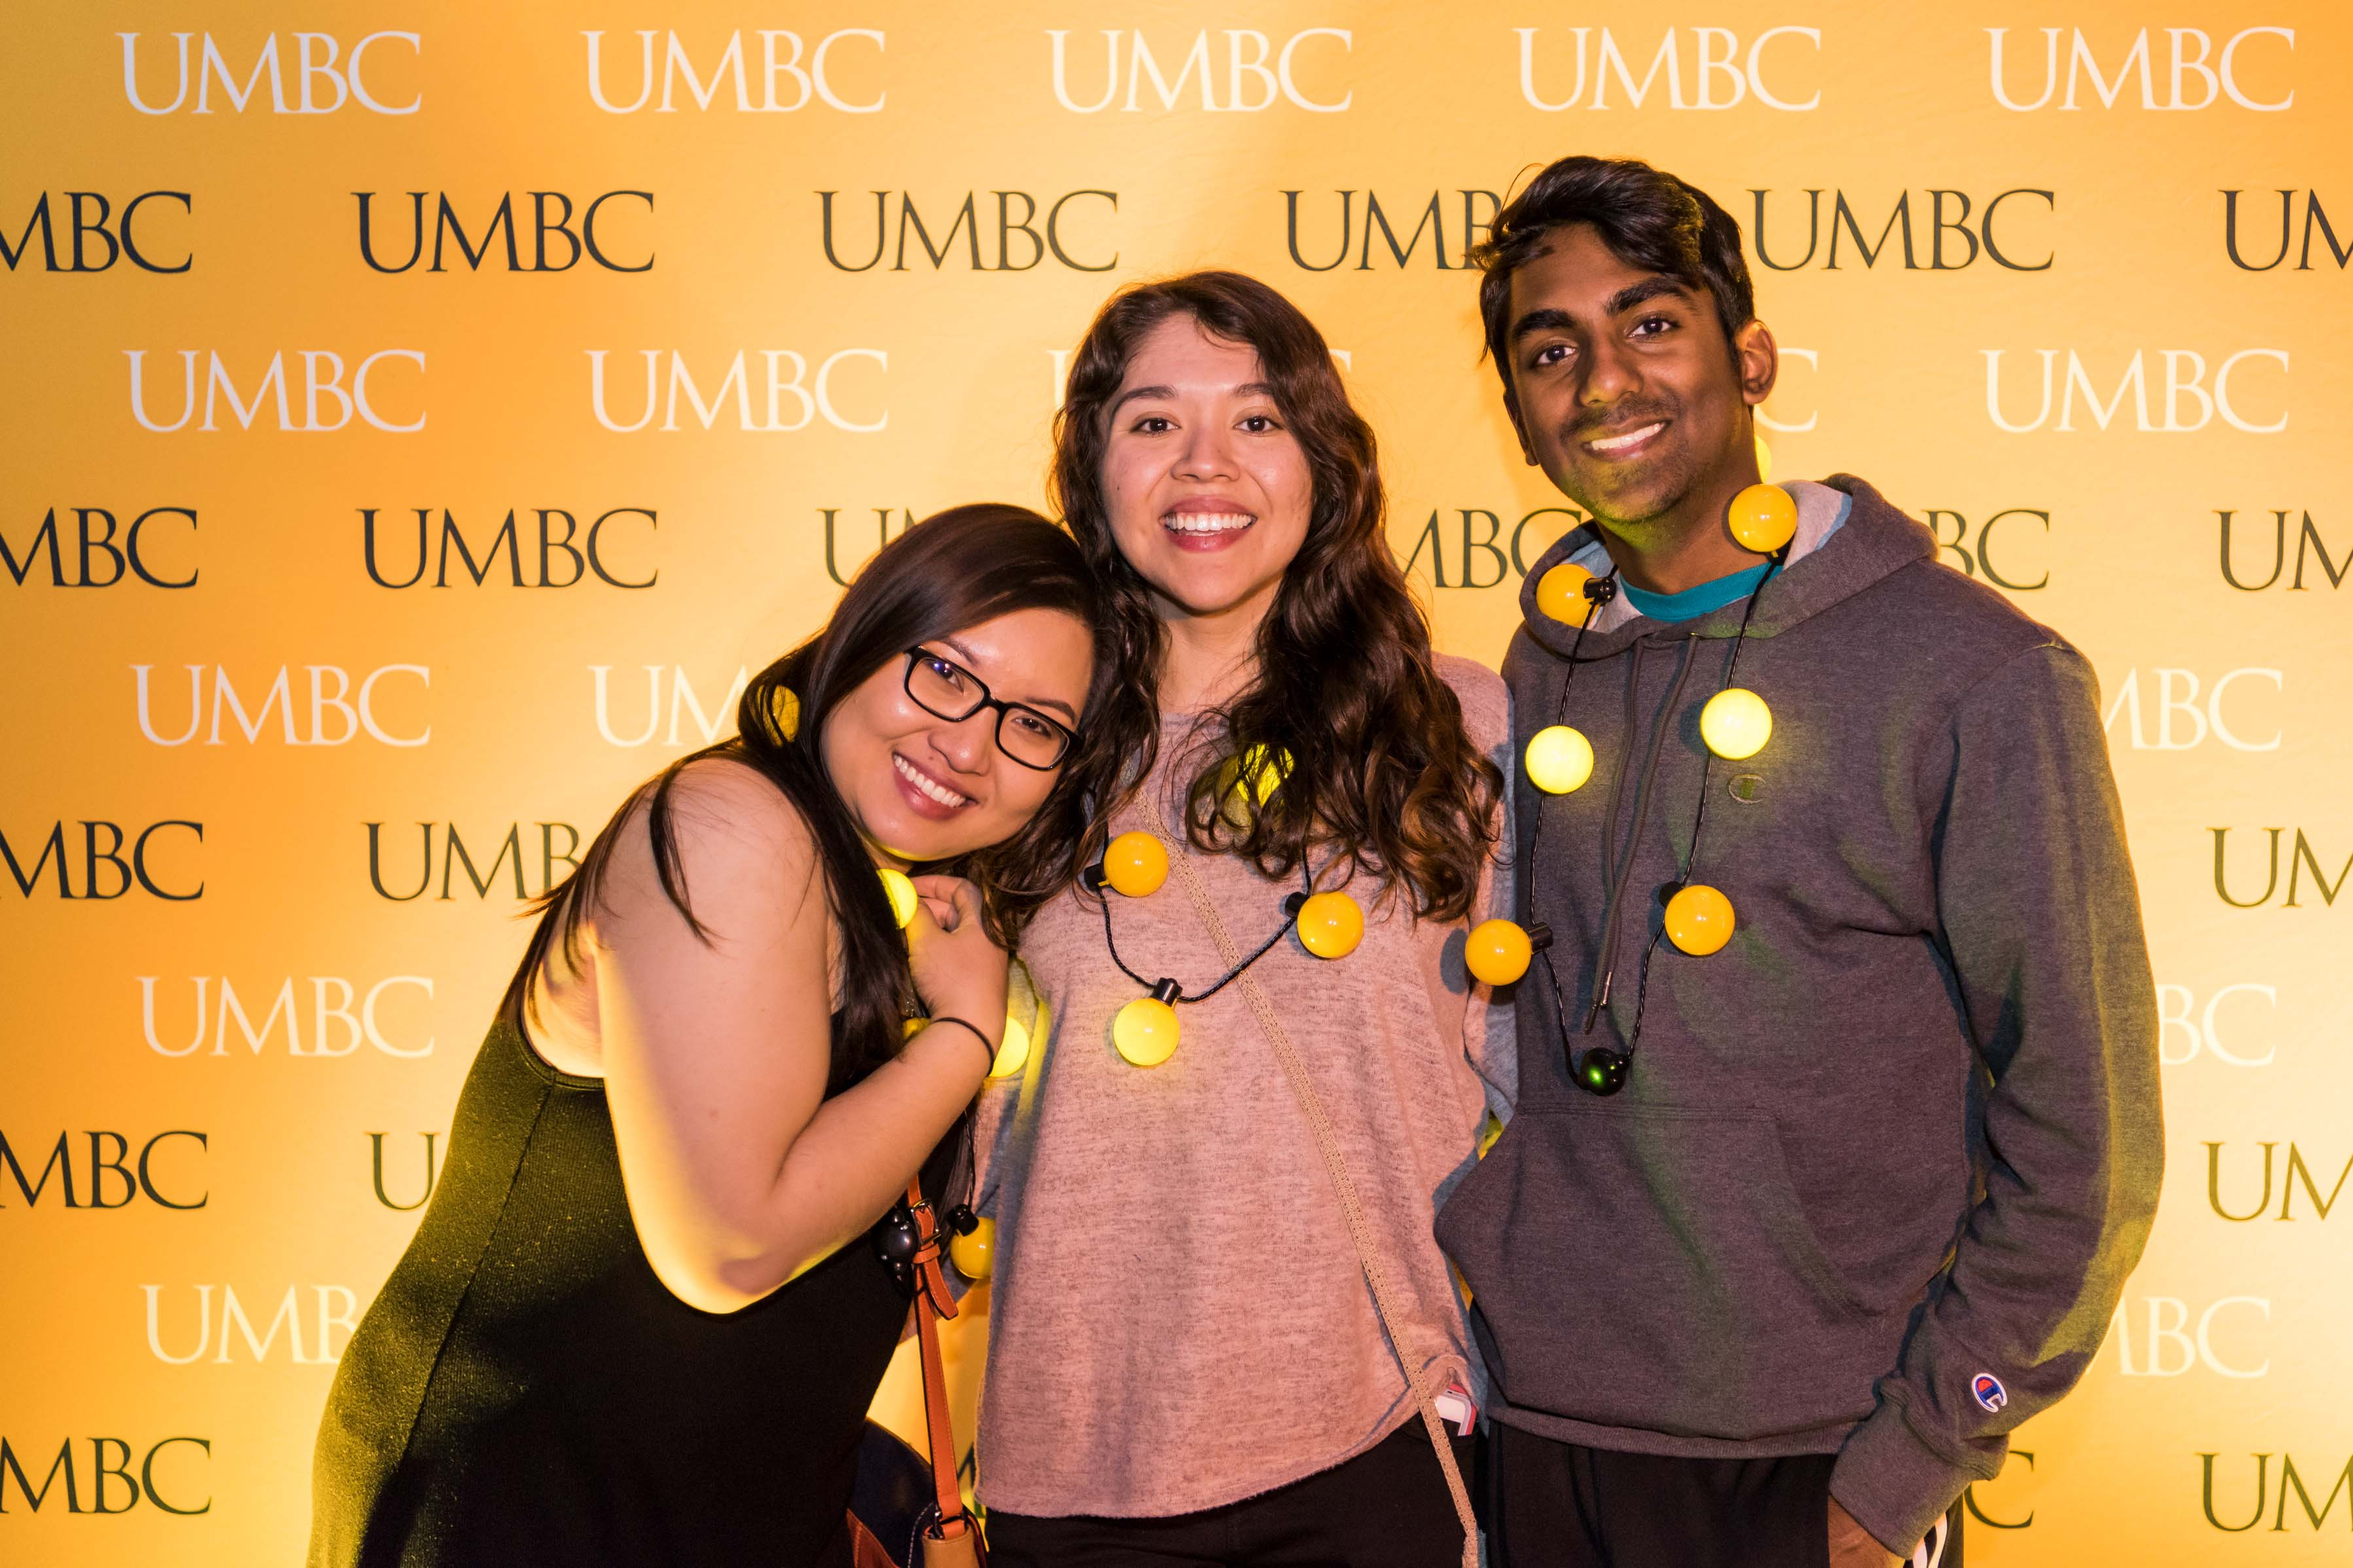 Group of friends pose in front of UMBC wall at Pier 5 reception